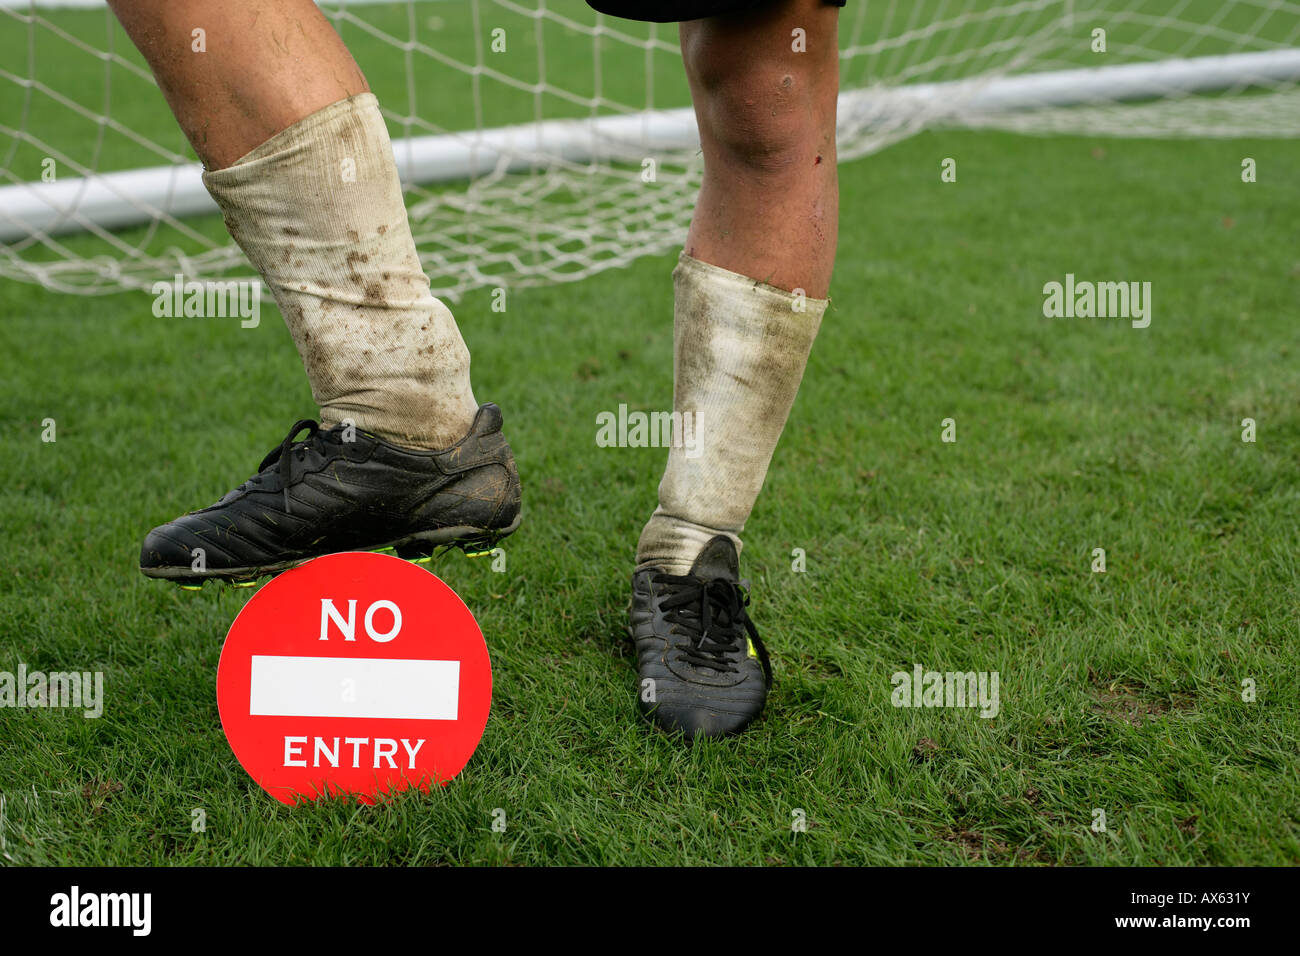 Soccer player's foot on a 'no entry' label - Stock Image